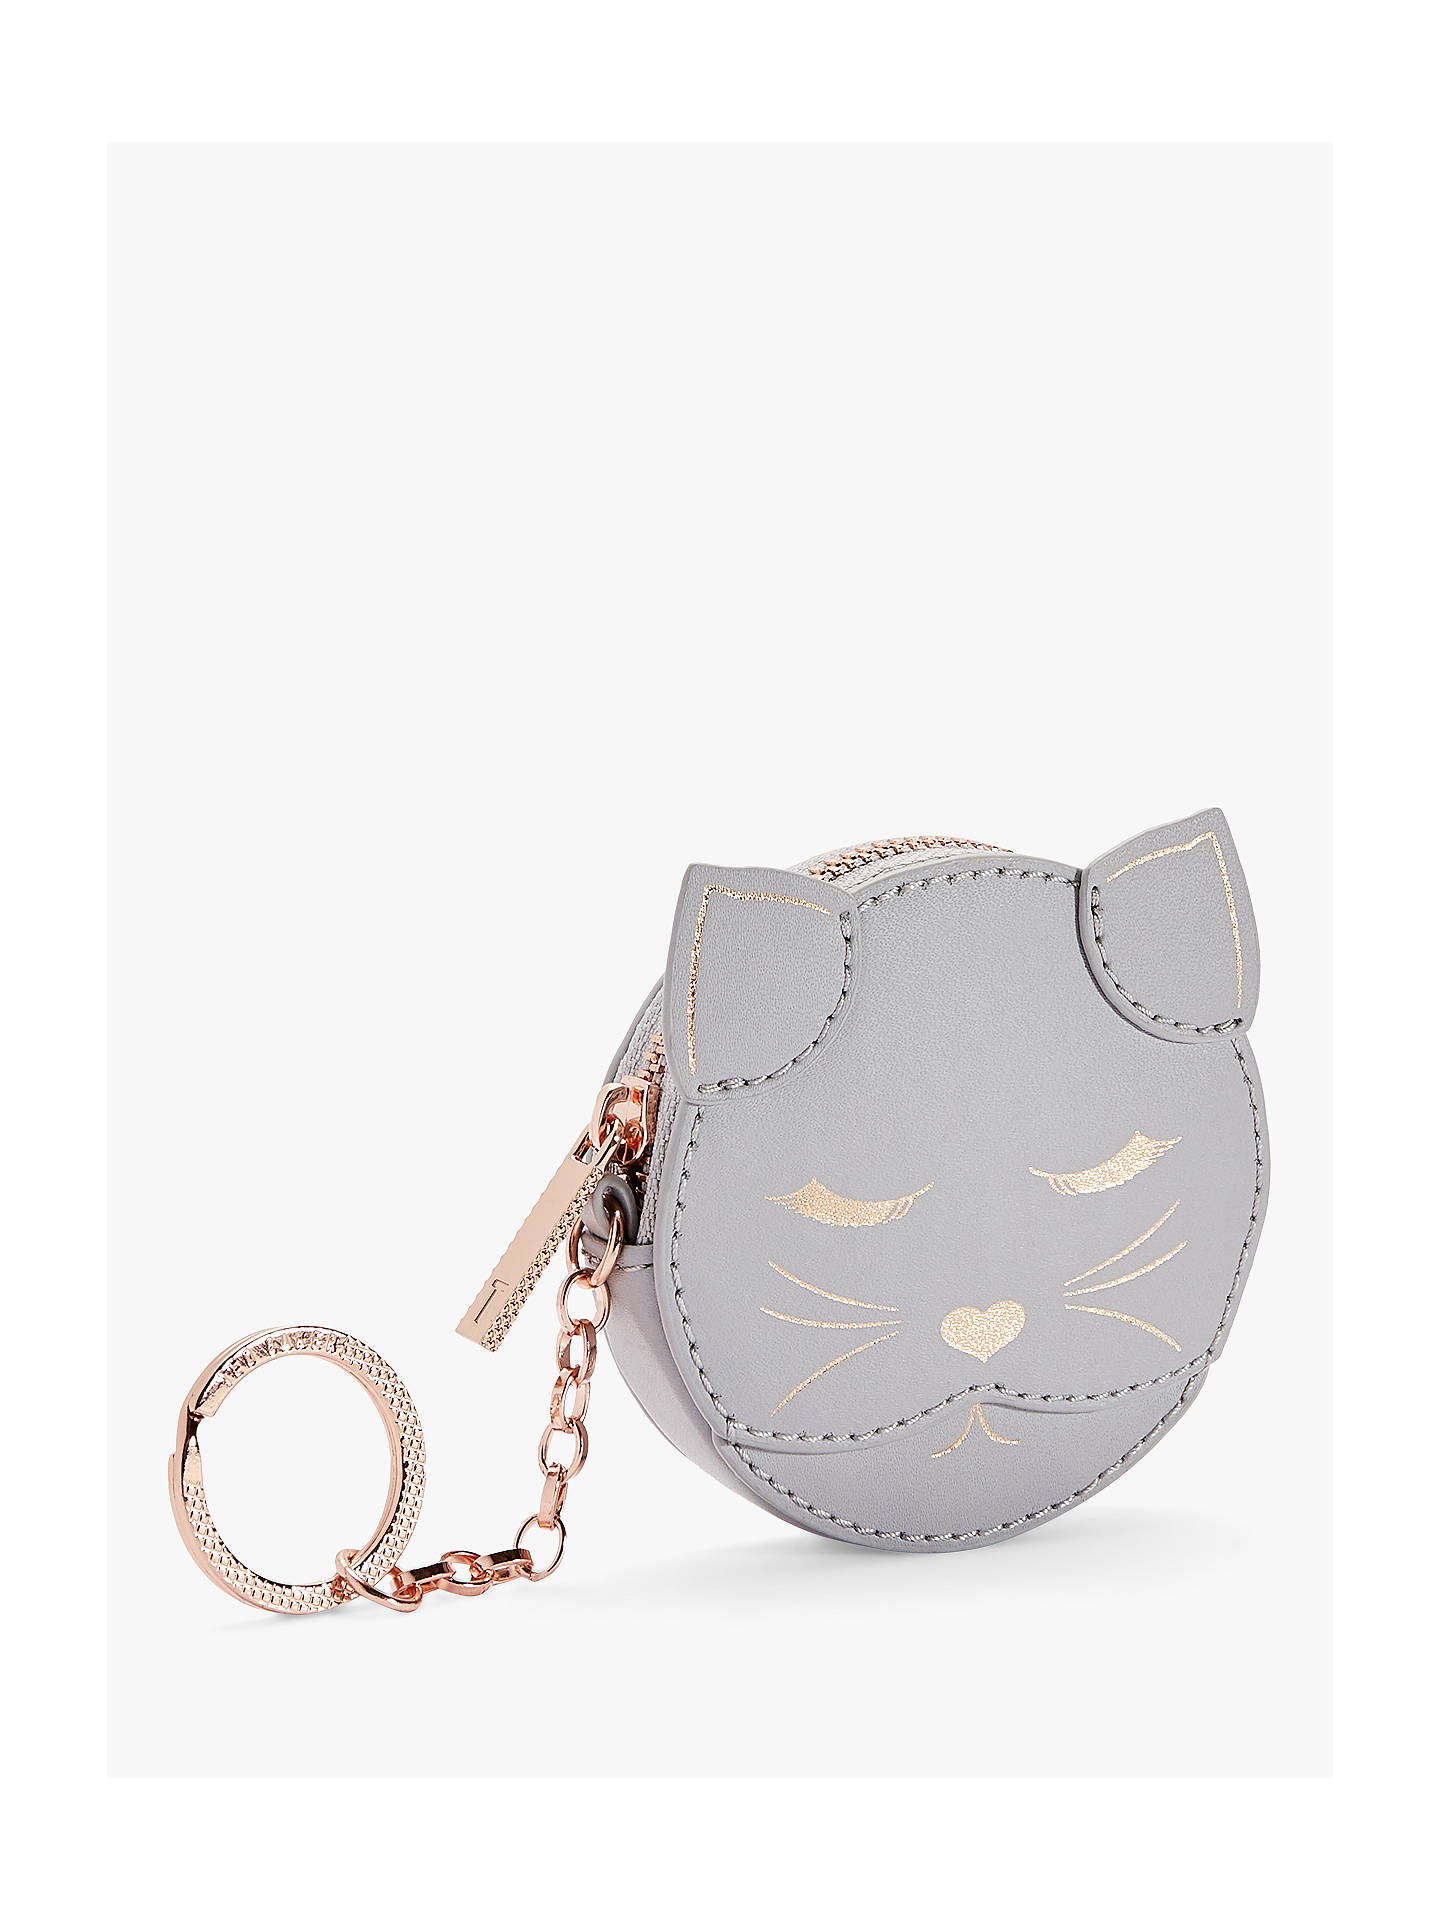 93097b1d0 Ted Baker Tabbiee Leather Cat Bag Charm Purse at John Lewis   Partners